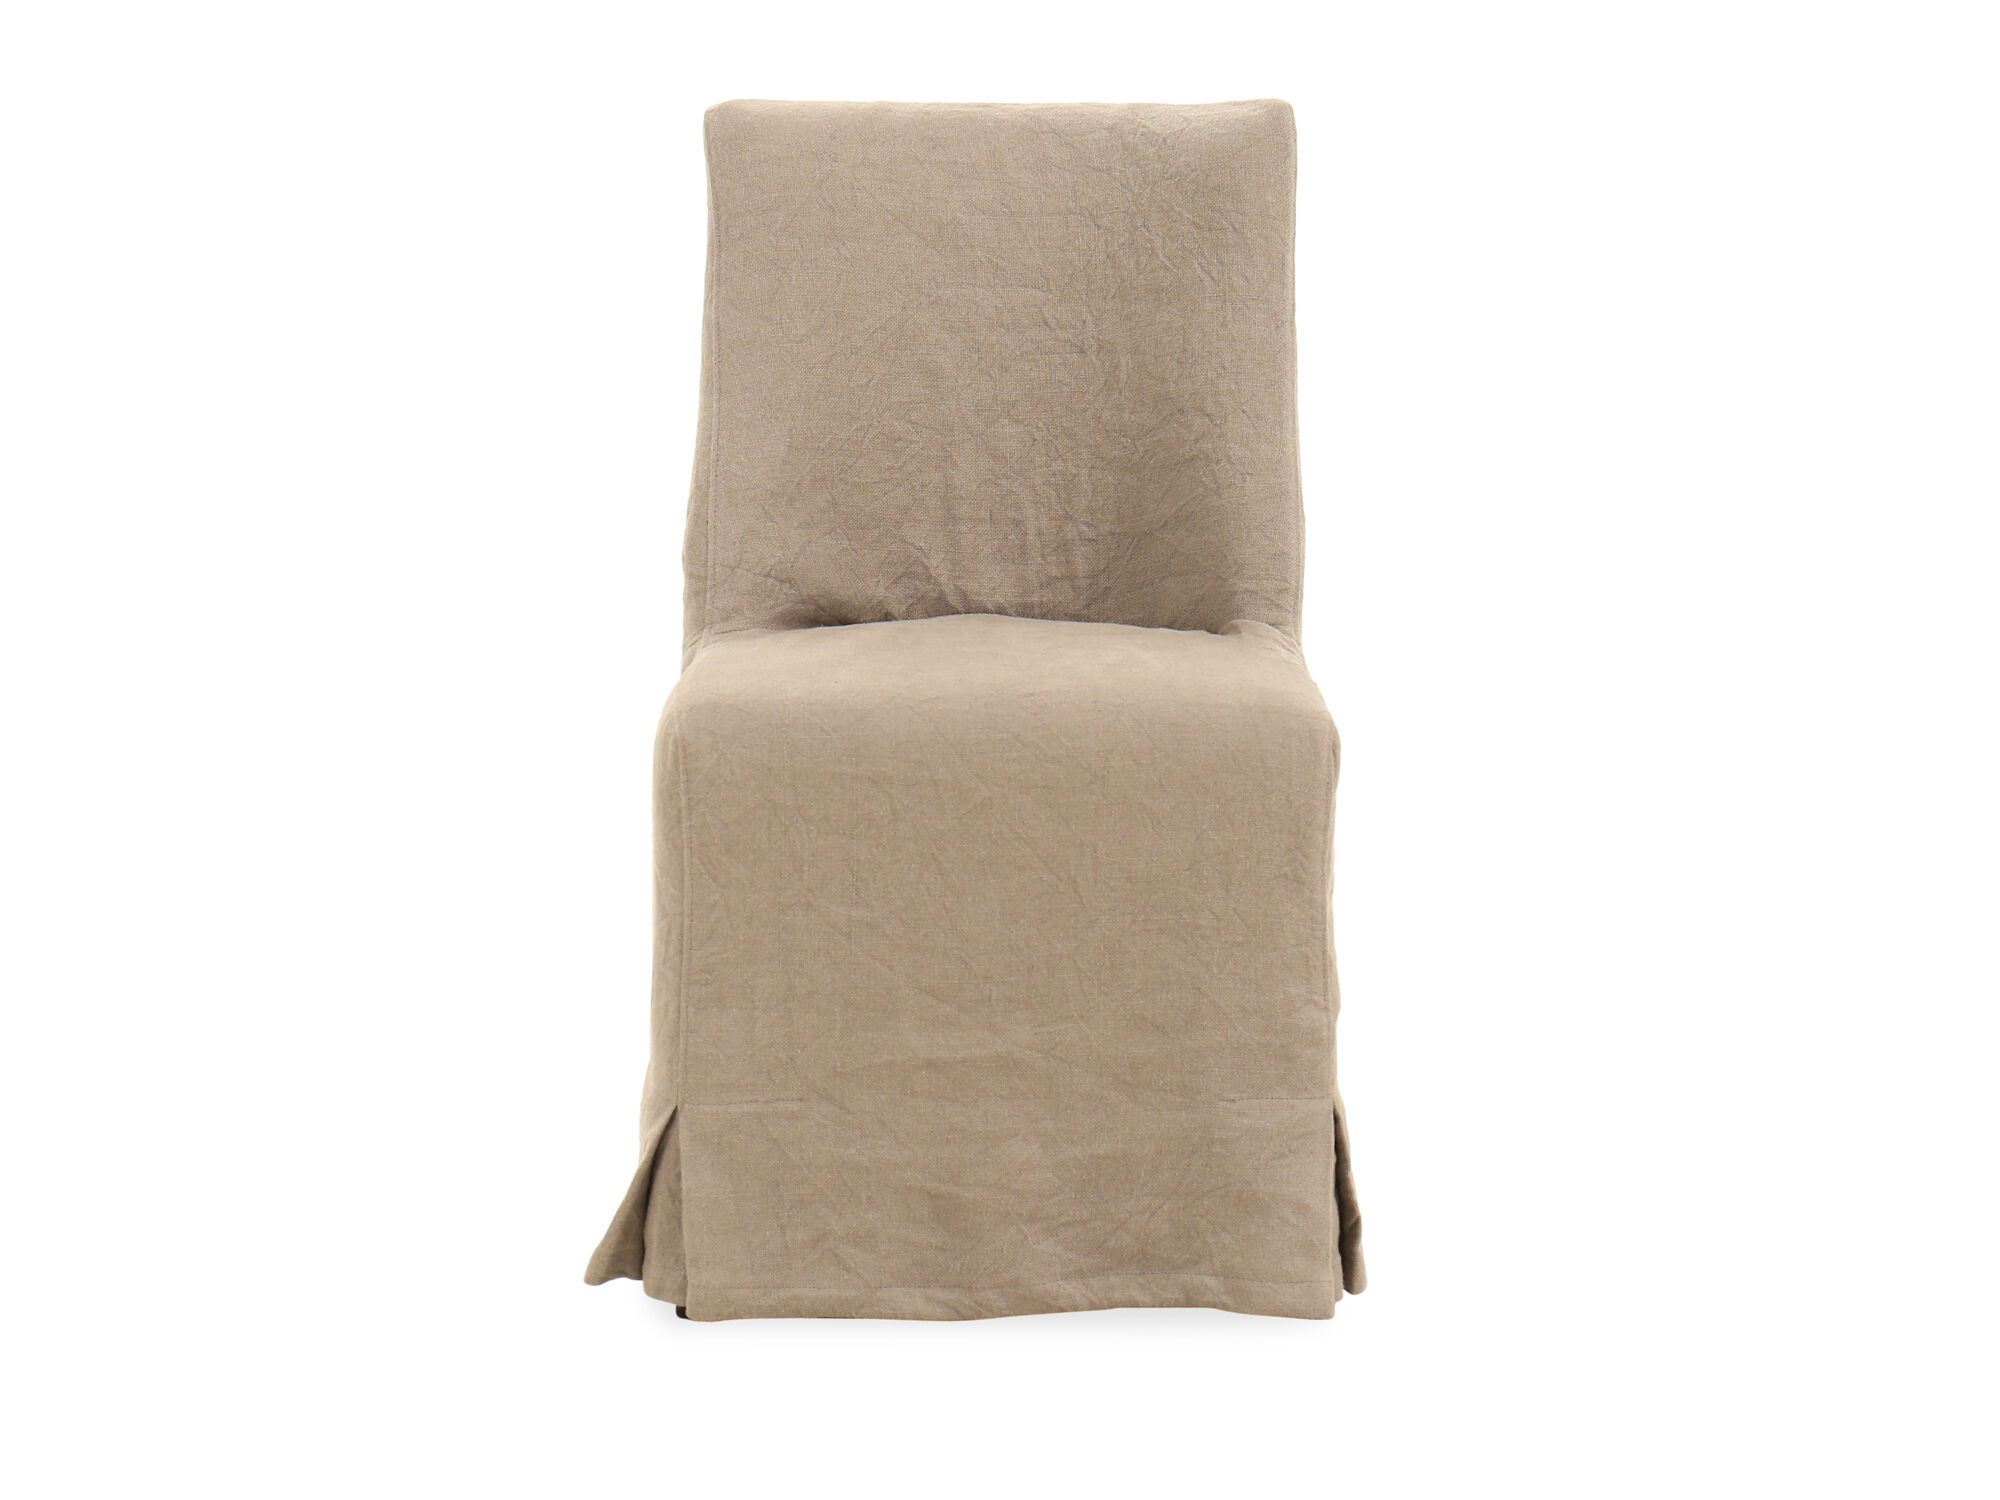 chair covers by ruth tantra ebay contemporary slip cover side in beige mathis